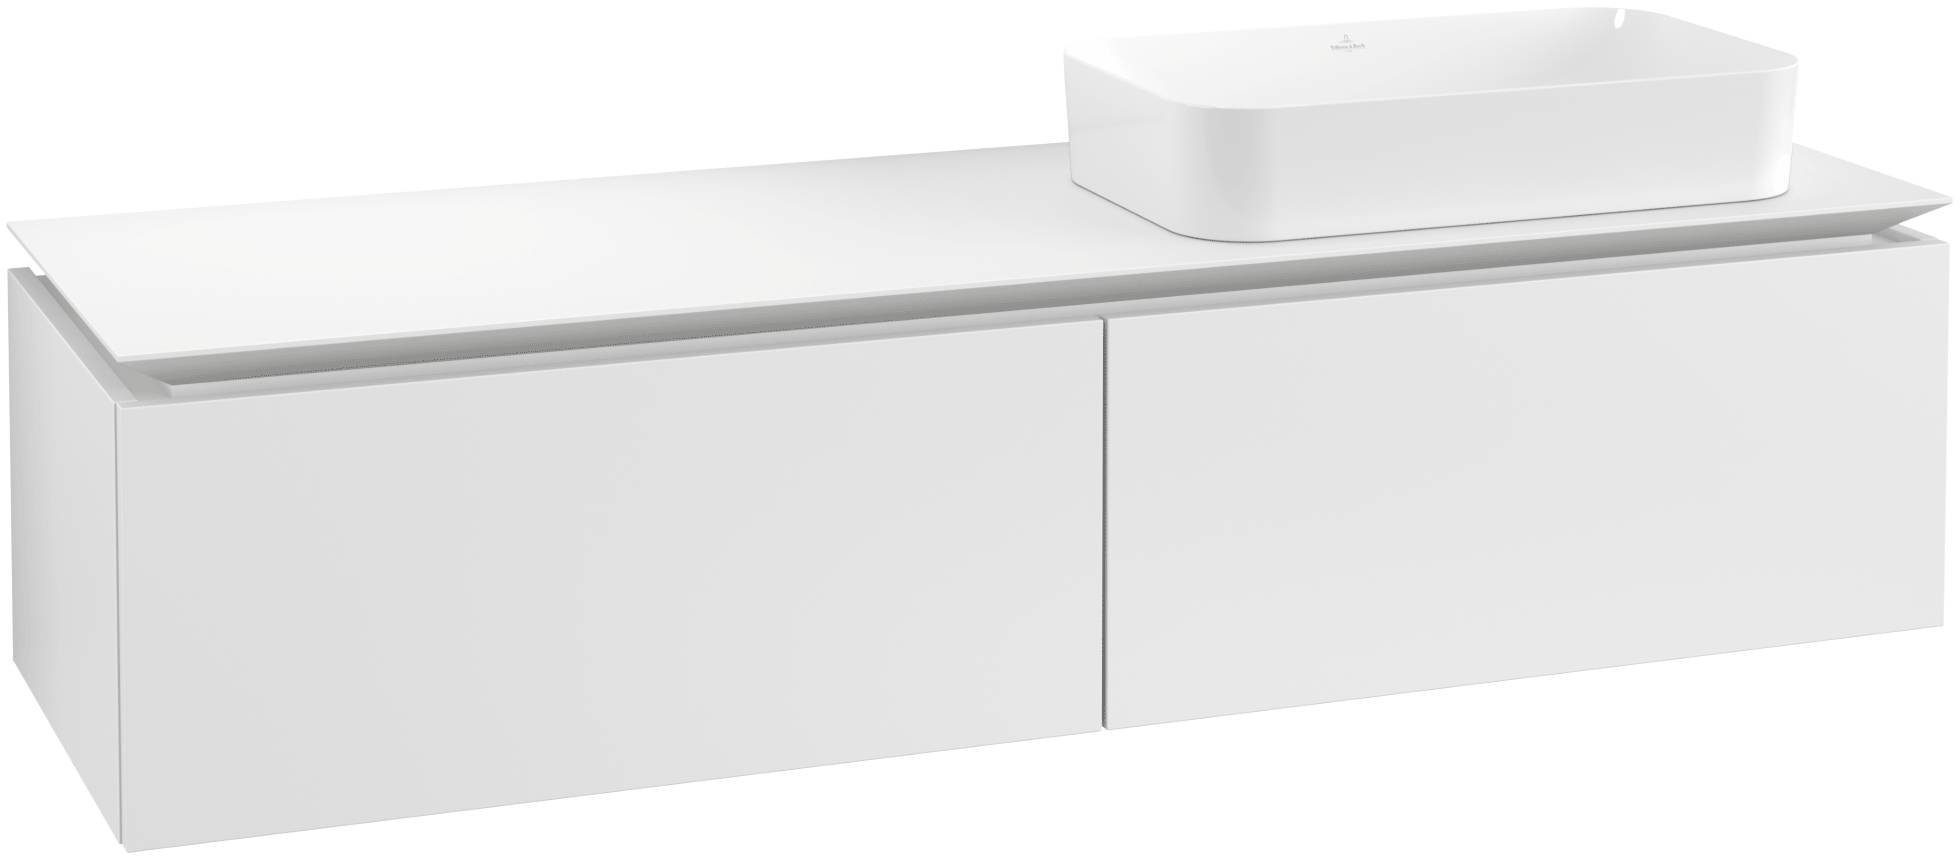 Villeroy & Boch Villeroy & Boch Legato - Meuble sous lavabo with 2 drawers & 1 cut-out right 1600 x 380 x 500mm blanc mat